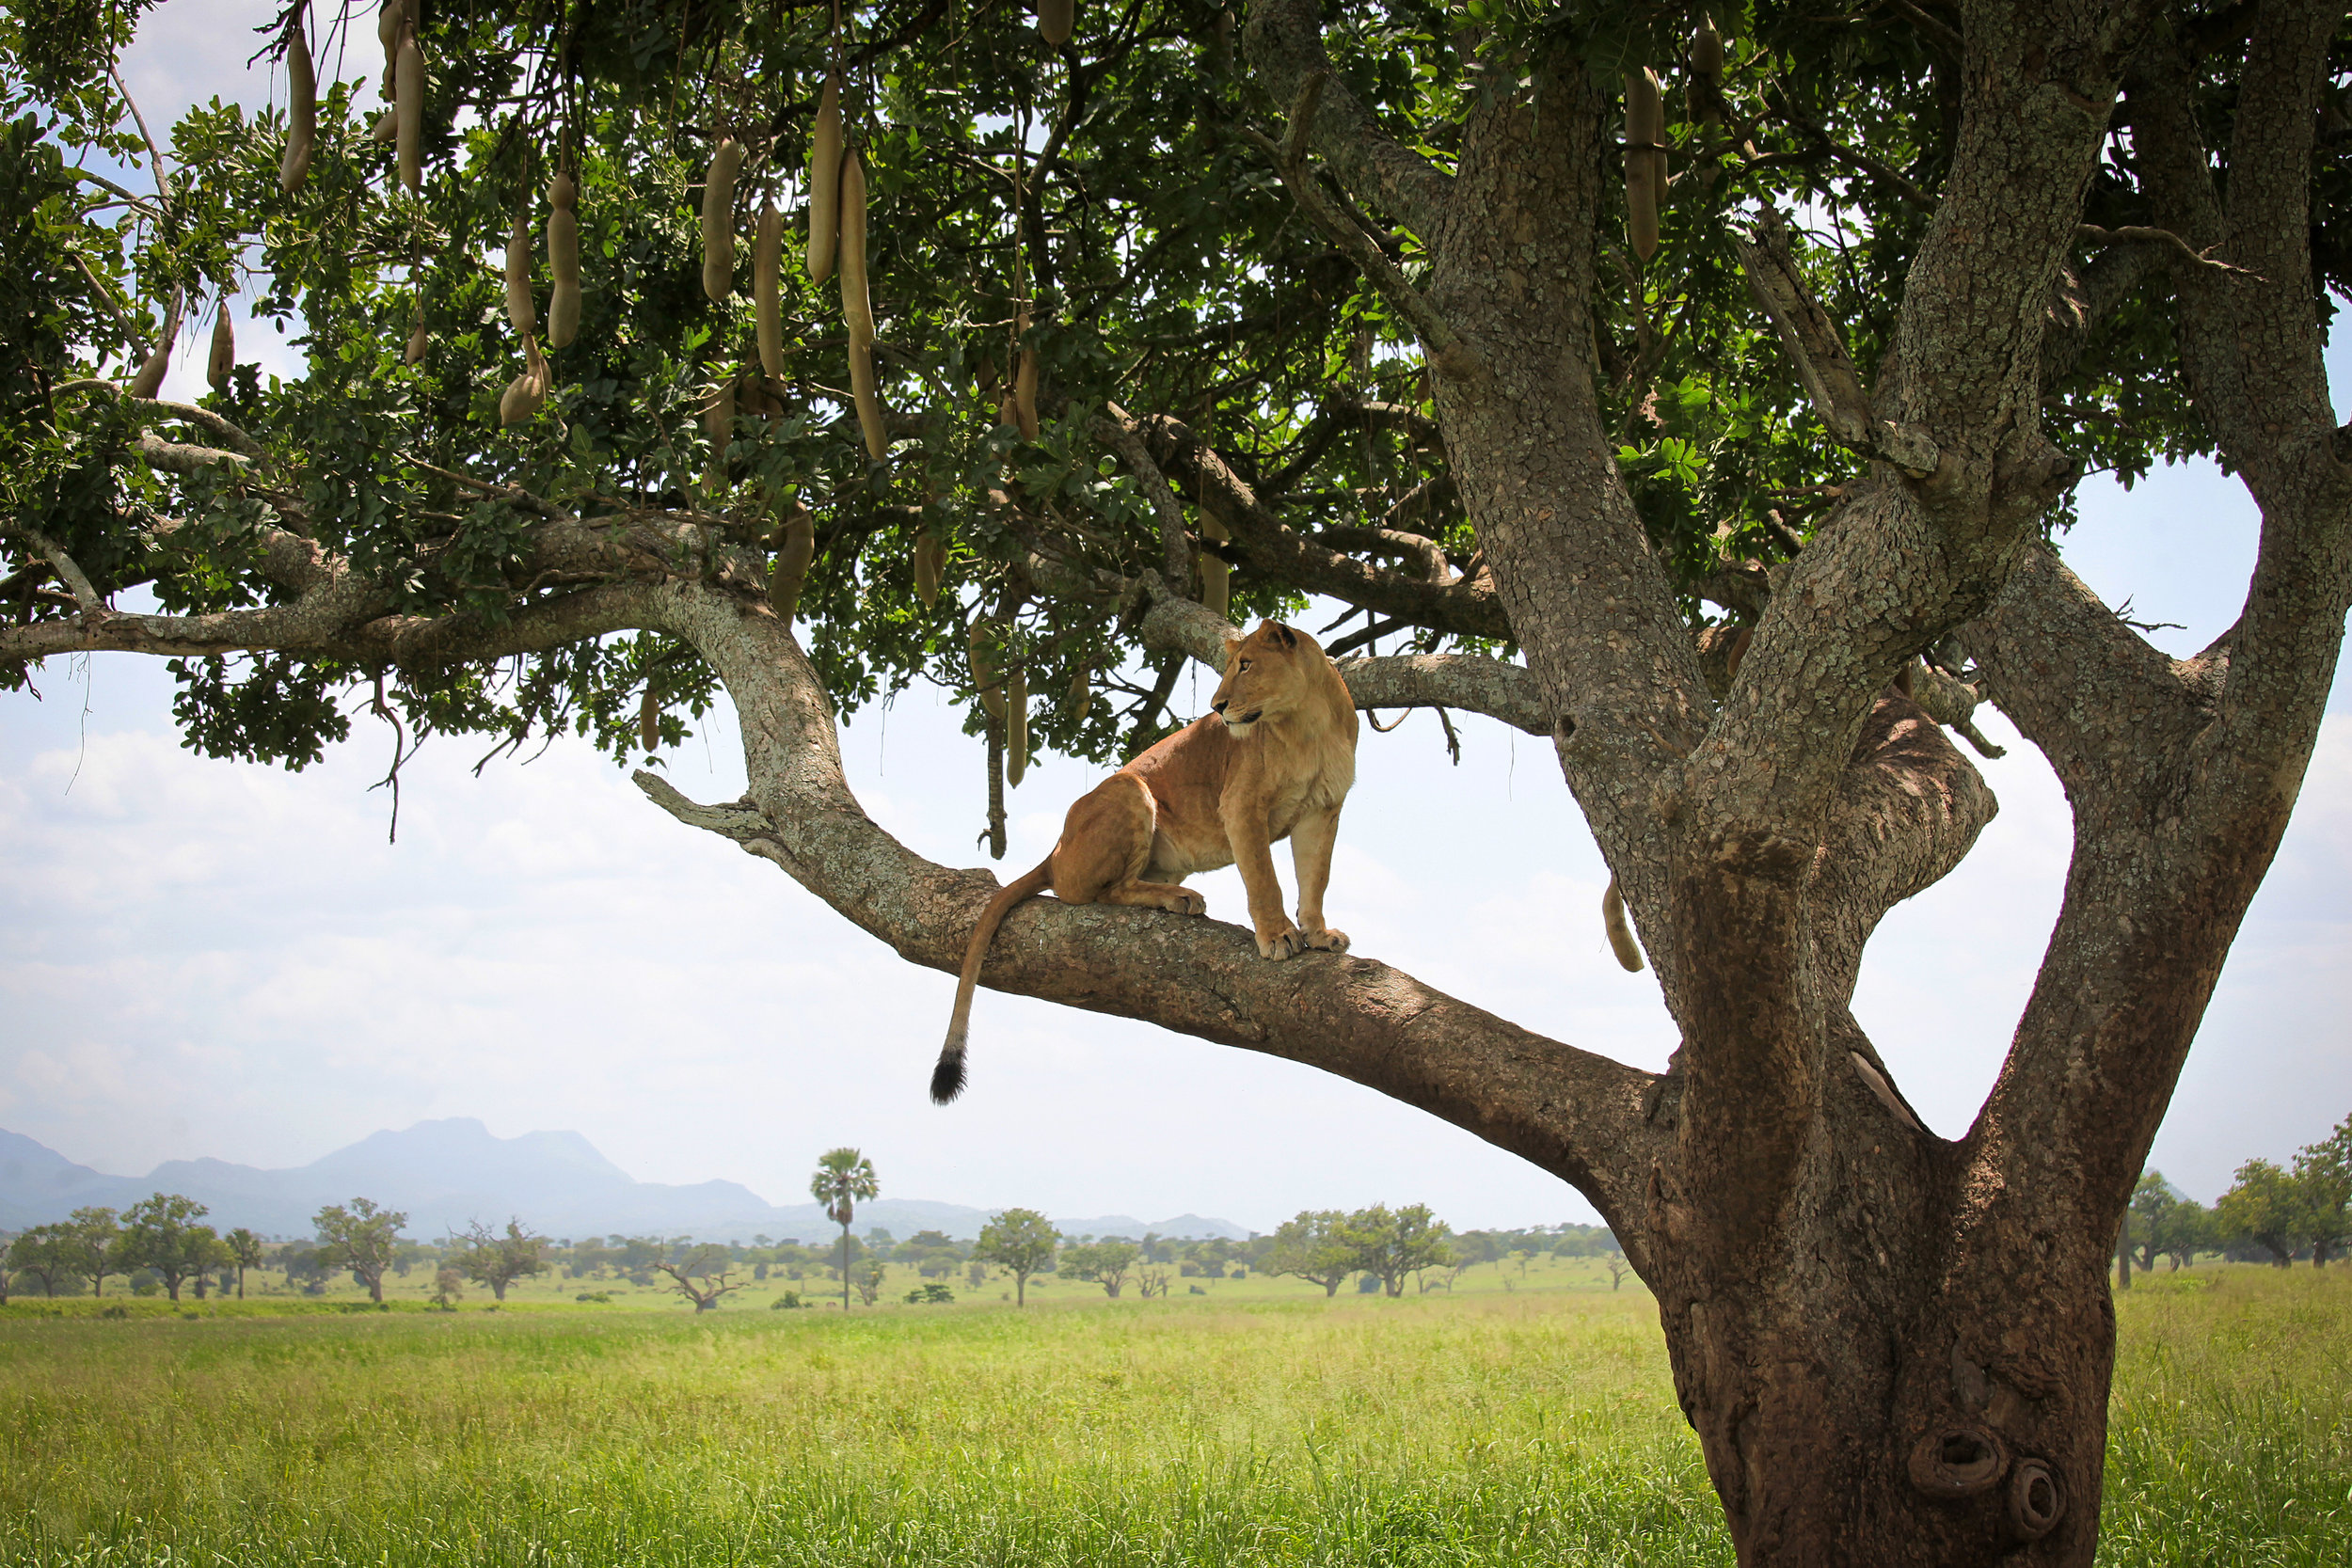 Tree Climbing Lions - Kidepo National Park